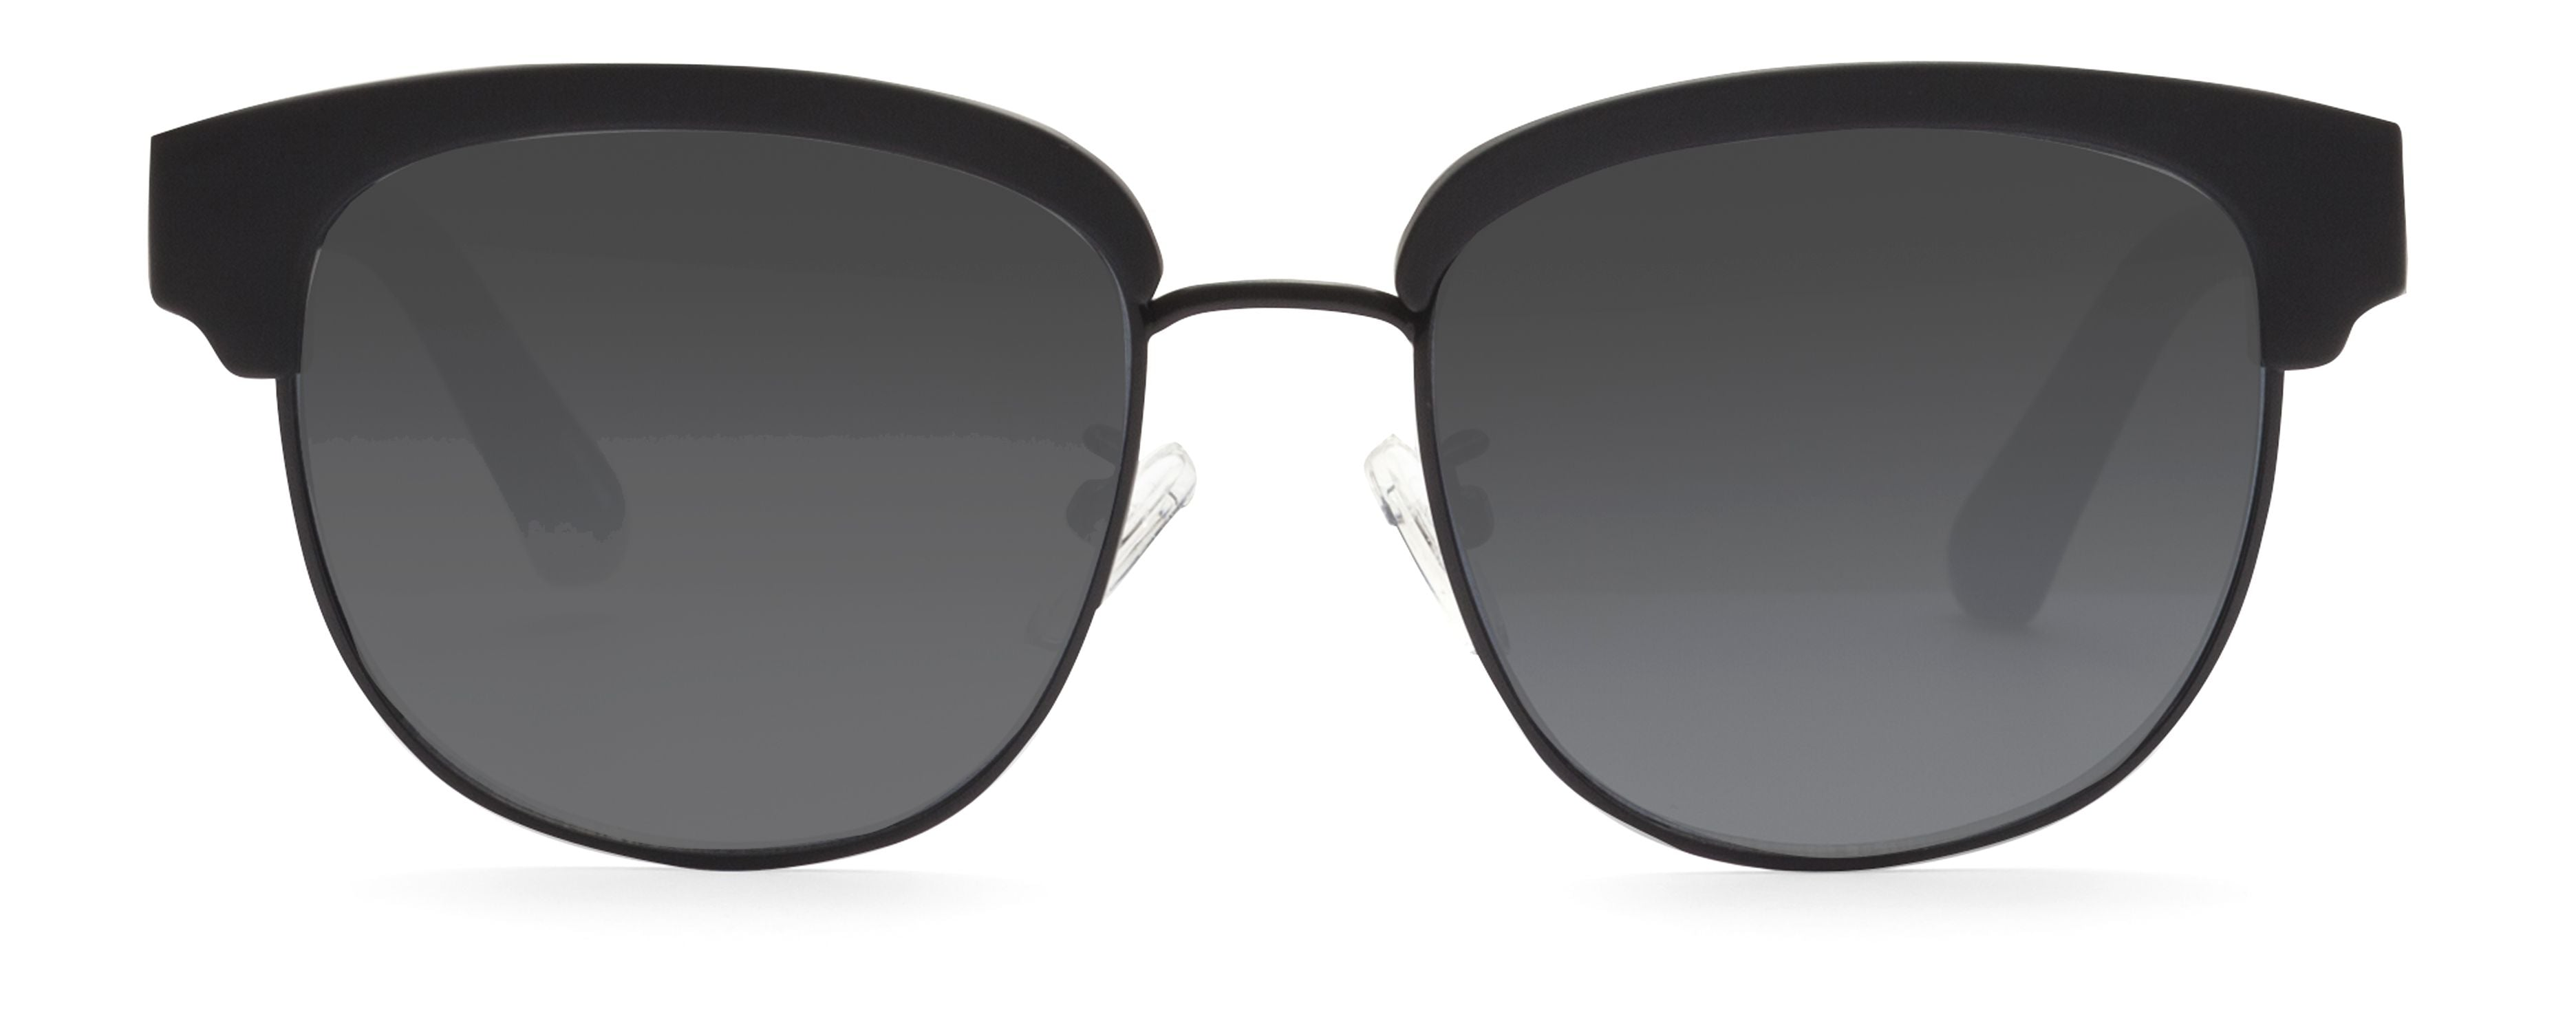 ZING Black JUNiA Kids Sunglasses